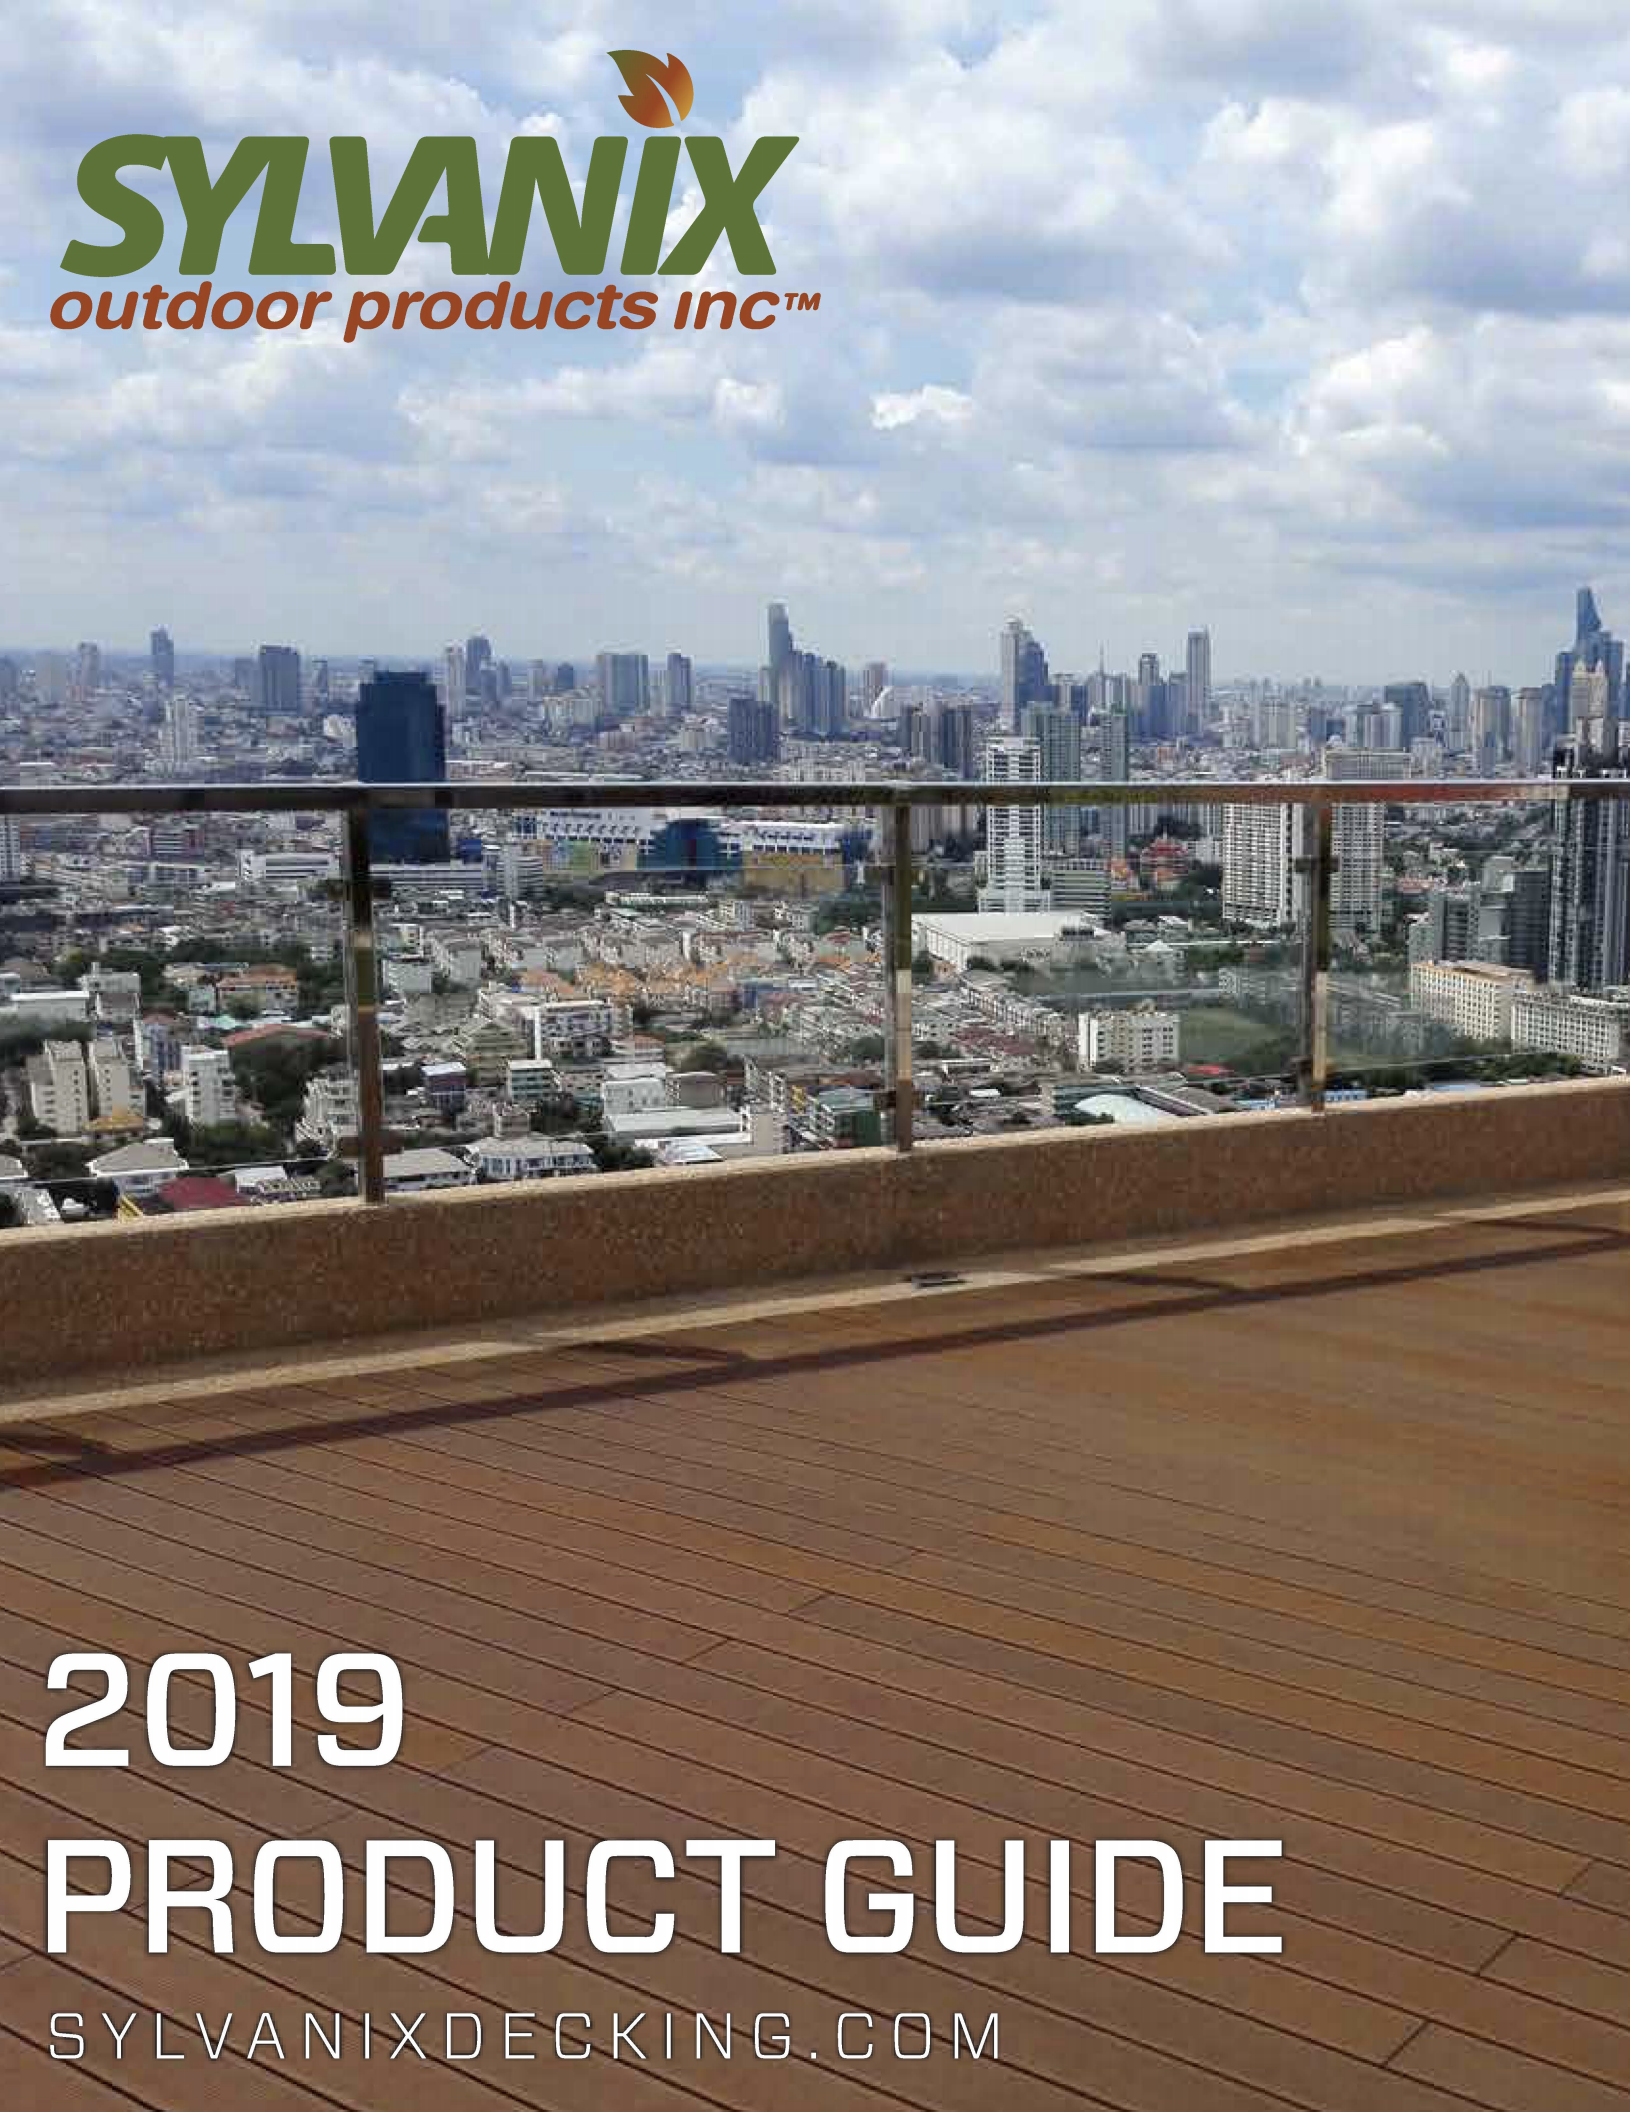 Sylvanix_Decking_2019_Product_Guide_Link.png